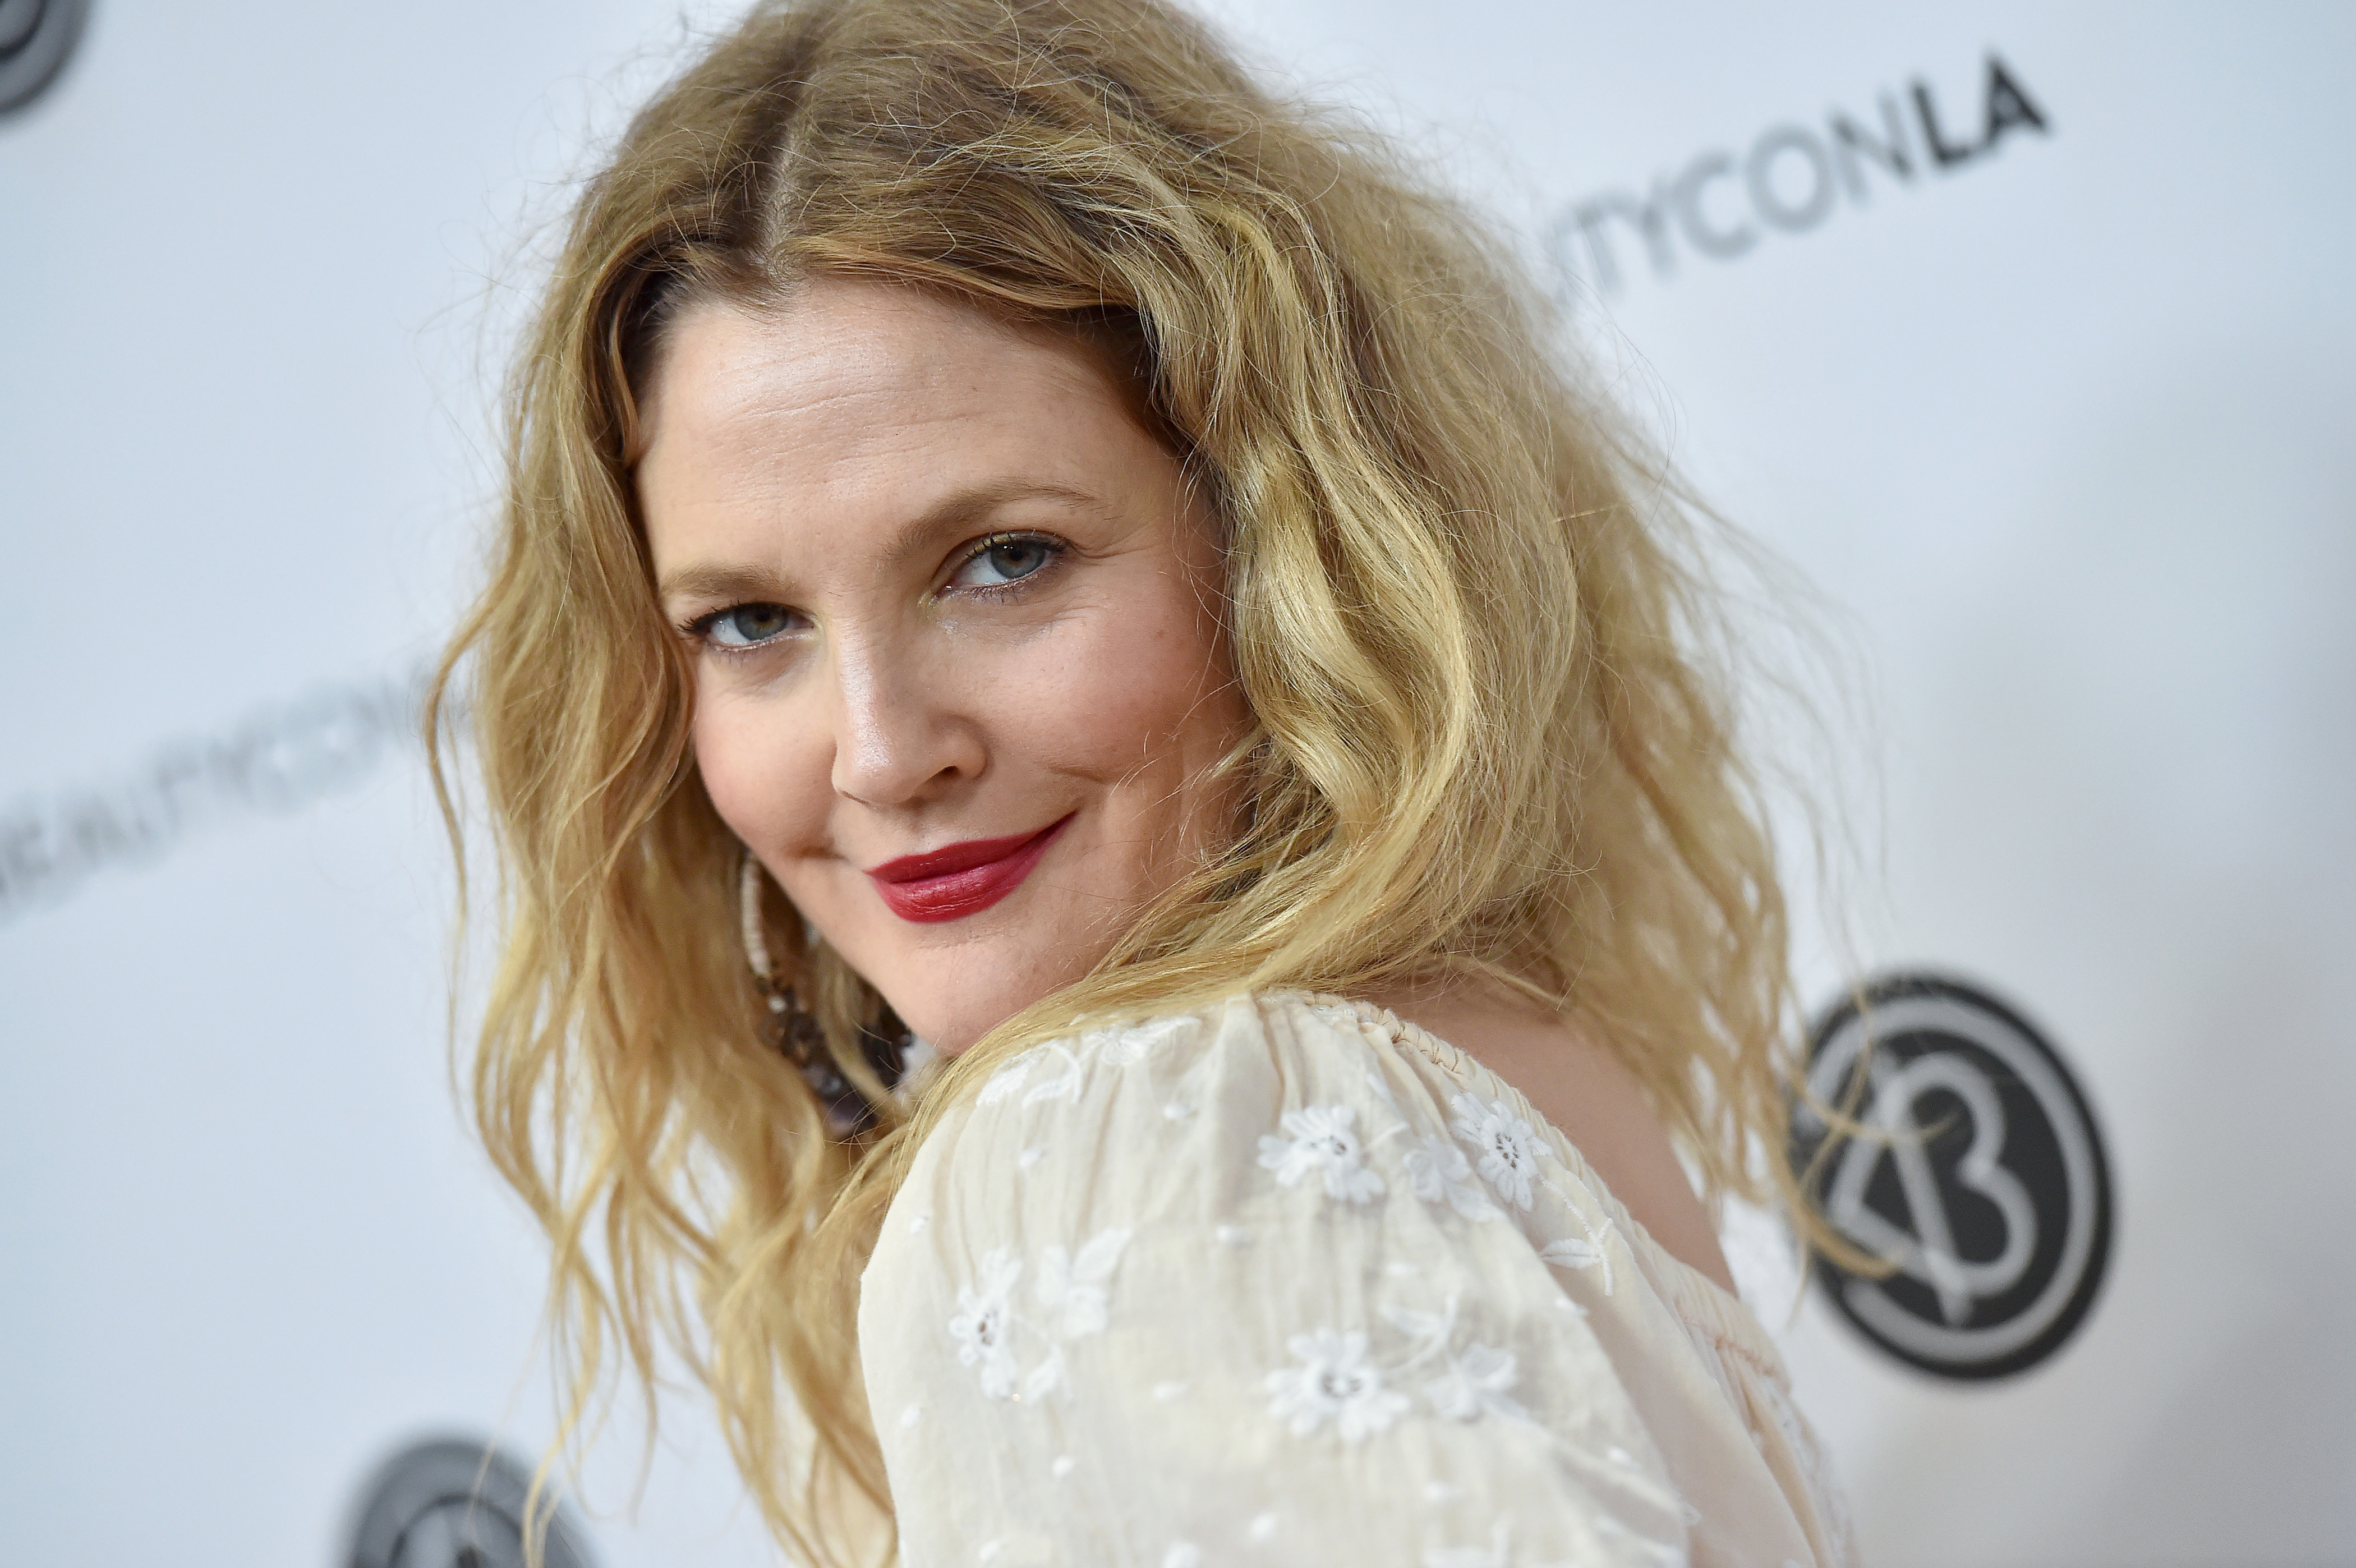 Drew Barrymore gets real about not dating for four years and says she's fought her way to happiness